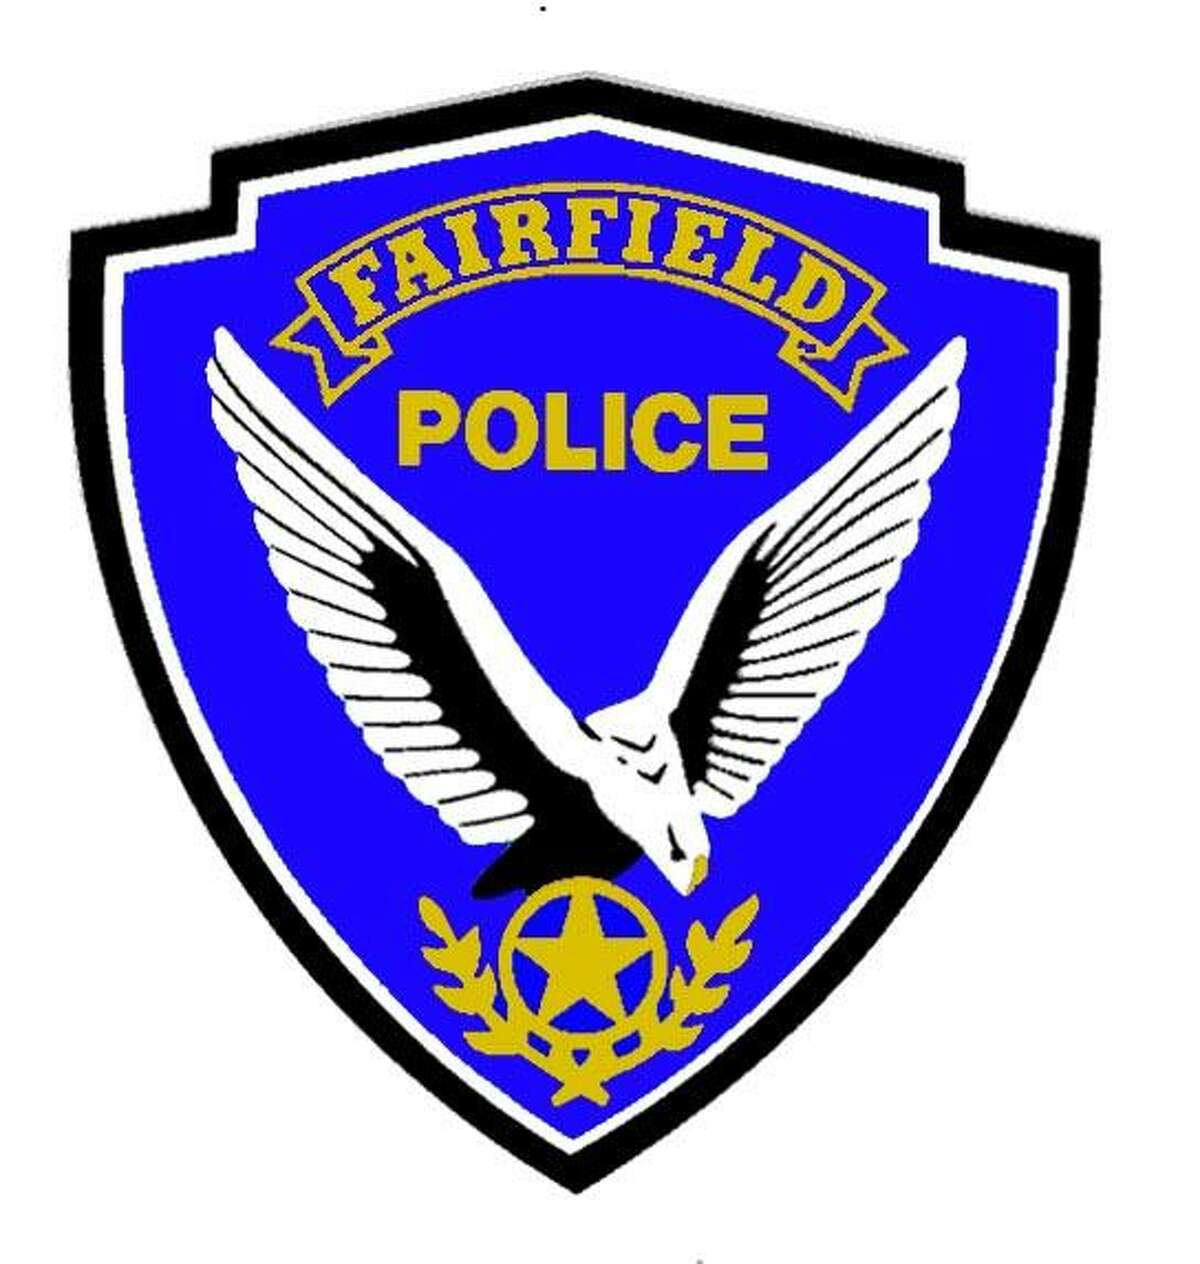 A 14-year-old boy shot and killed another 14-year-old boy in Fairfield early Sunday morning in an incident originally thought to be a collision between a pedestrian and a train, authorities said.